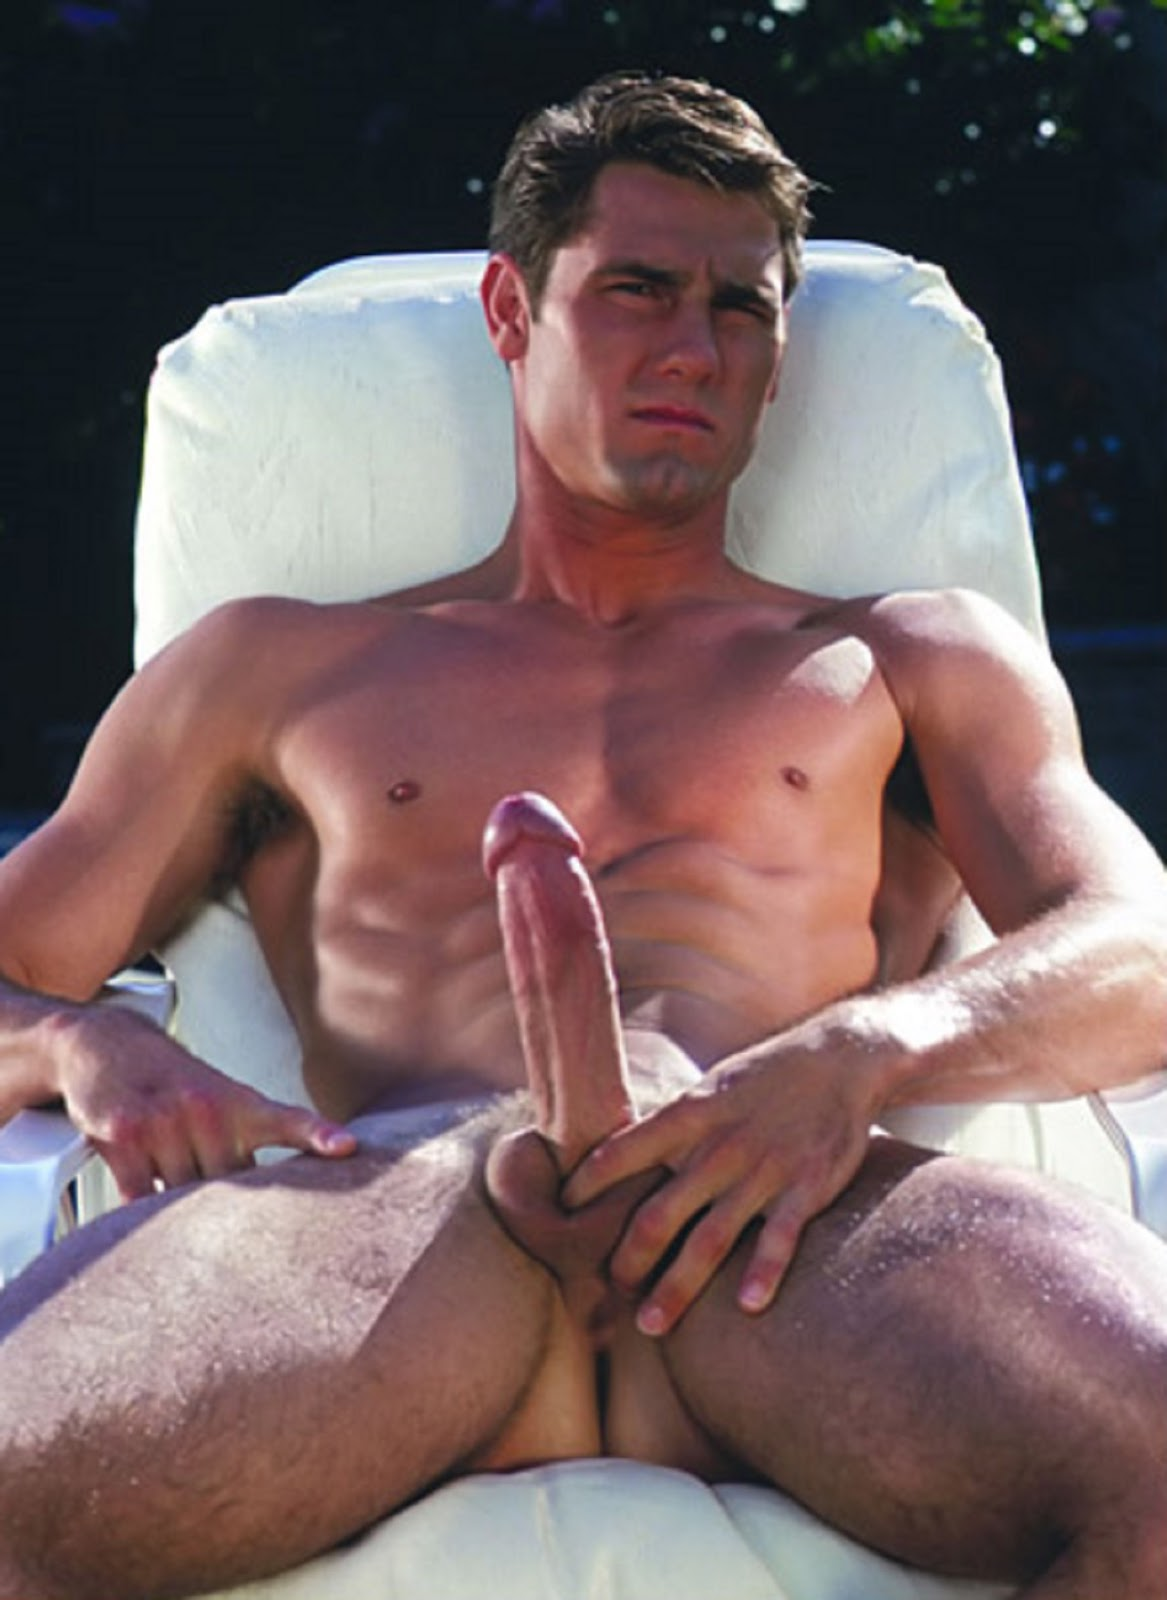 from Beckham brad pitt gay pictures